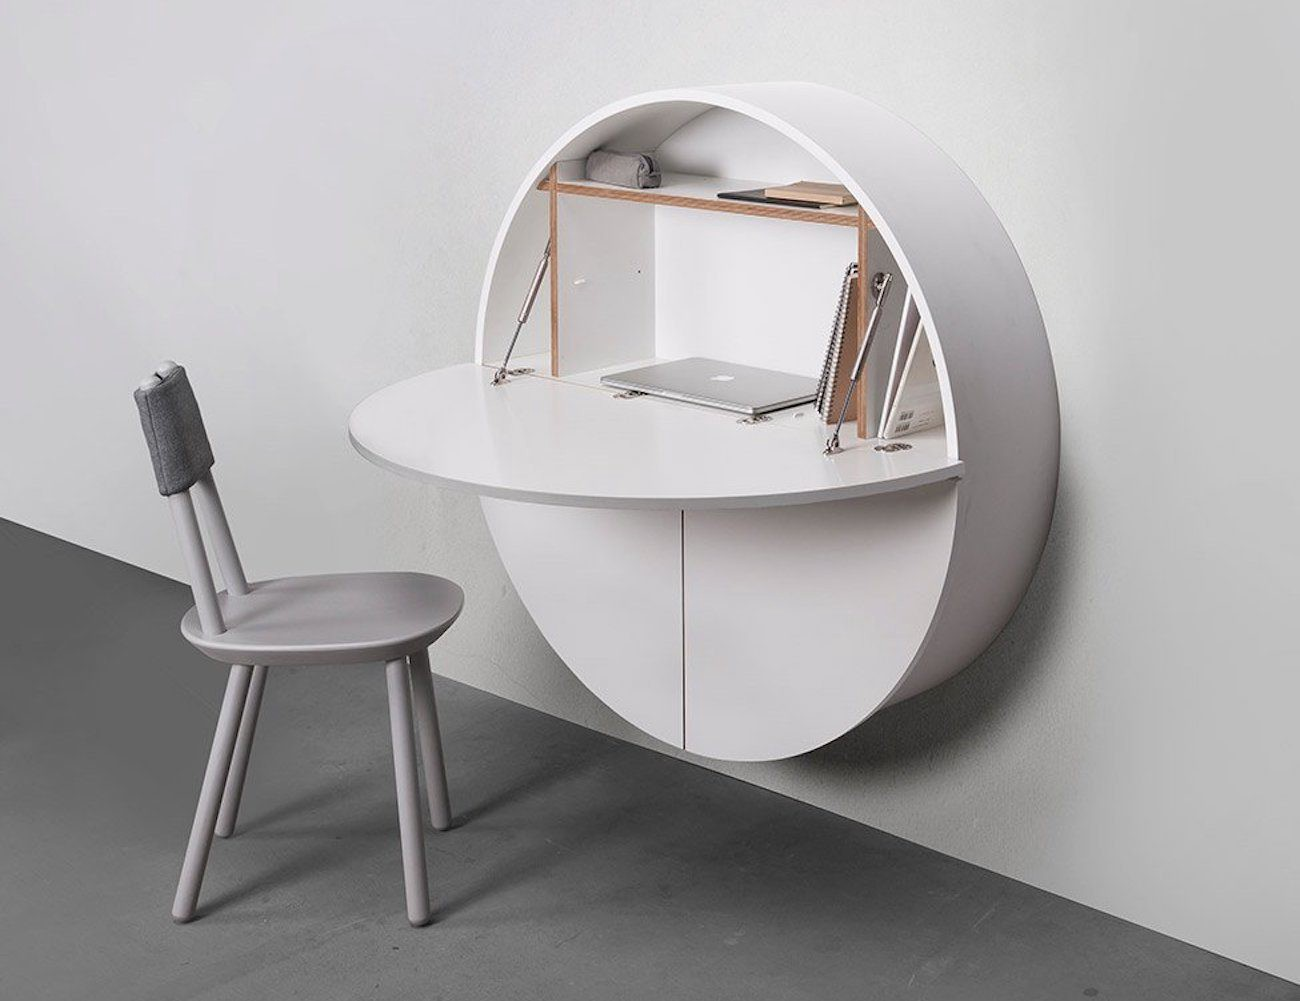 Working In Virtually Any Space, The Pill Desk Looks Like A Simple Circle  When Not In Use. The Cabinet Actually Opens With Three Cupboards.